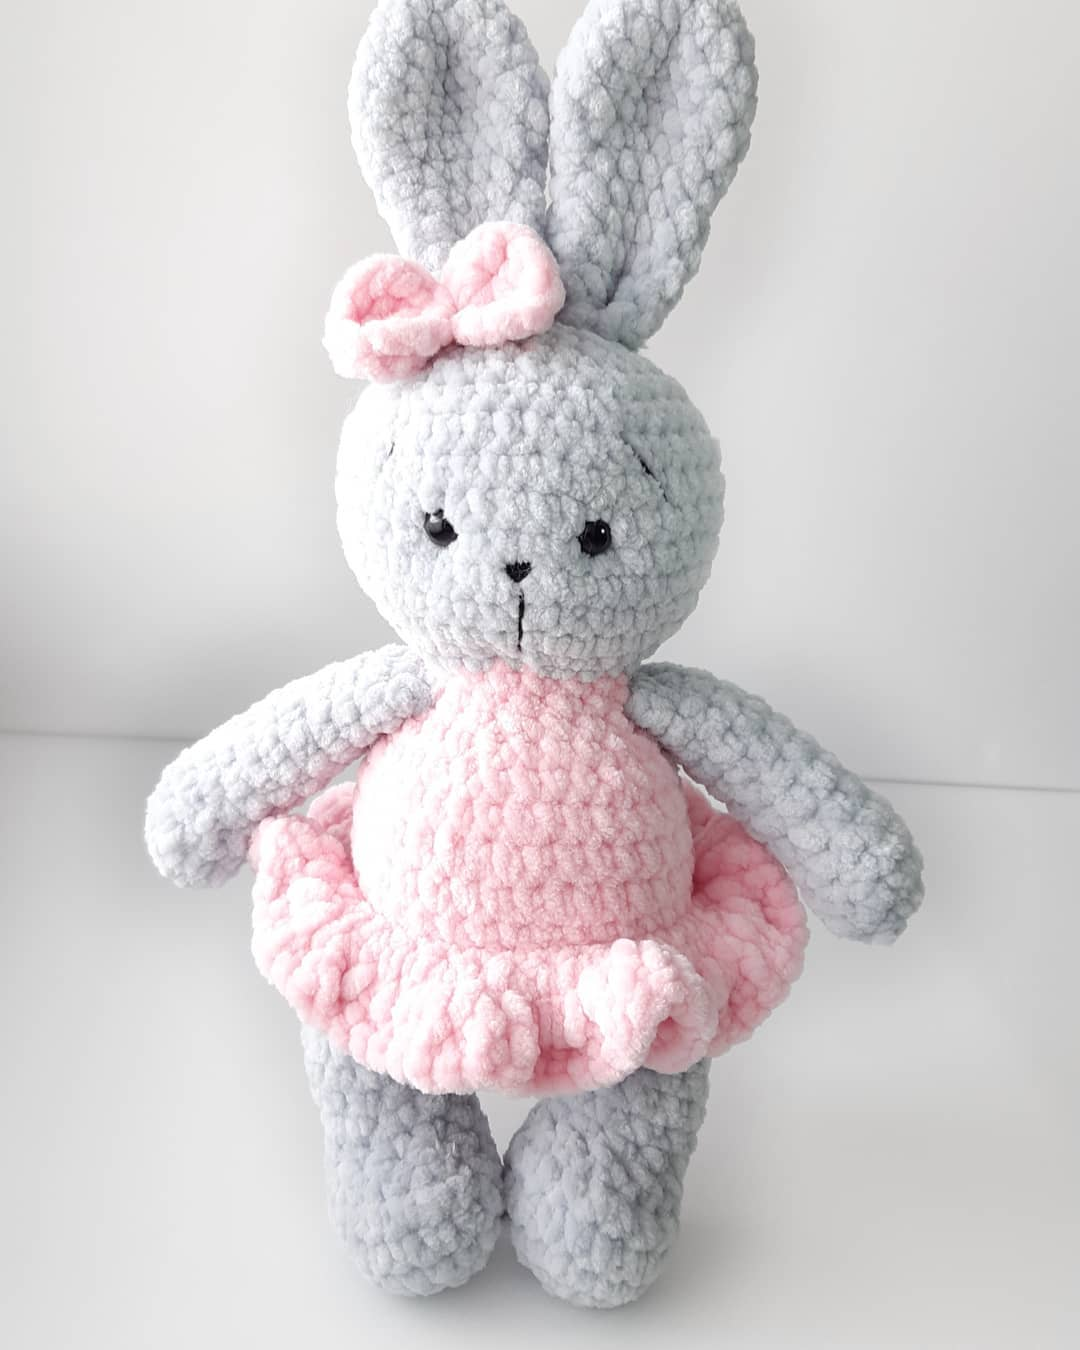 Crochet plush bunny free pattern